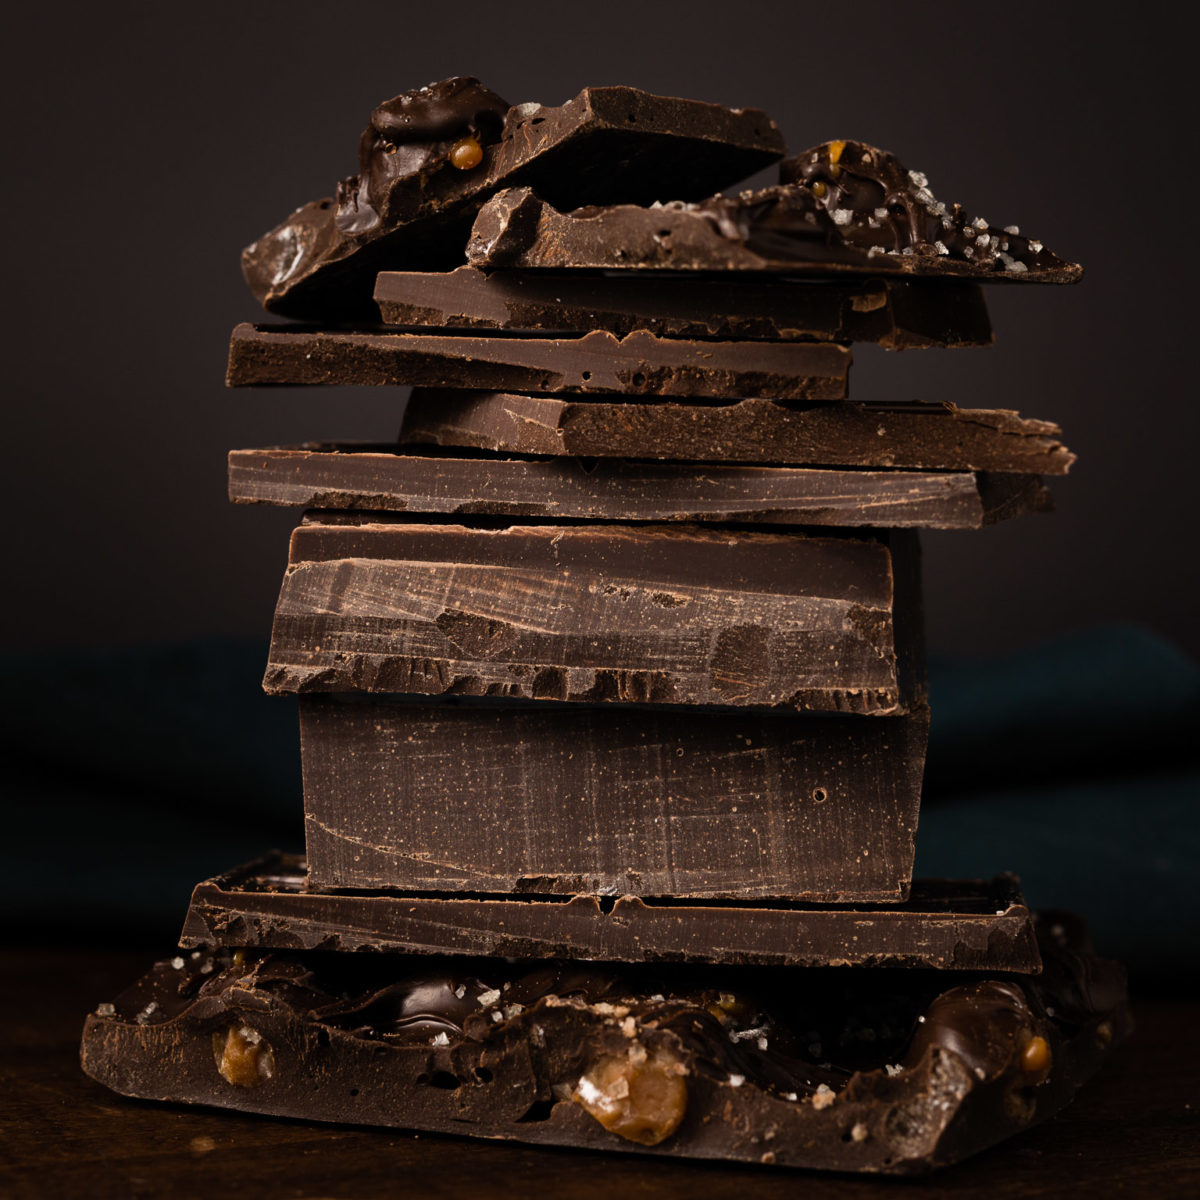 Food photography of a stack of chocolate bars